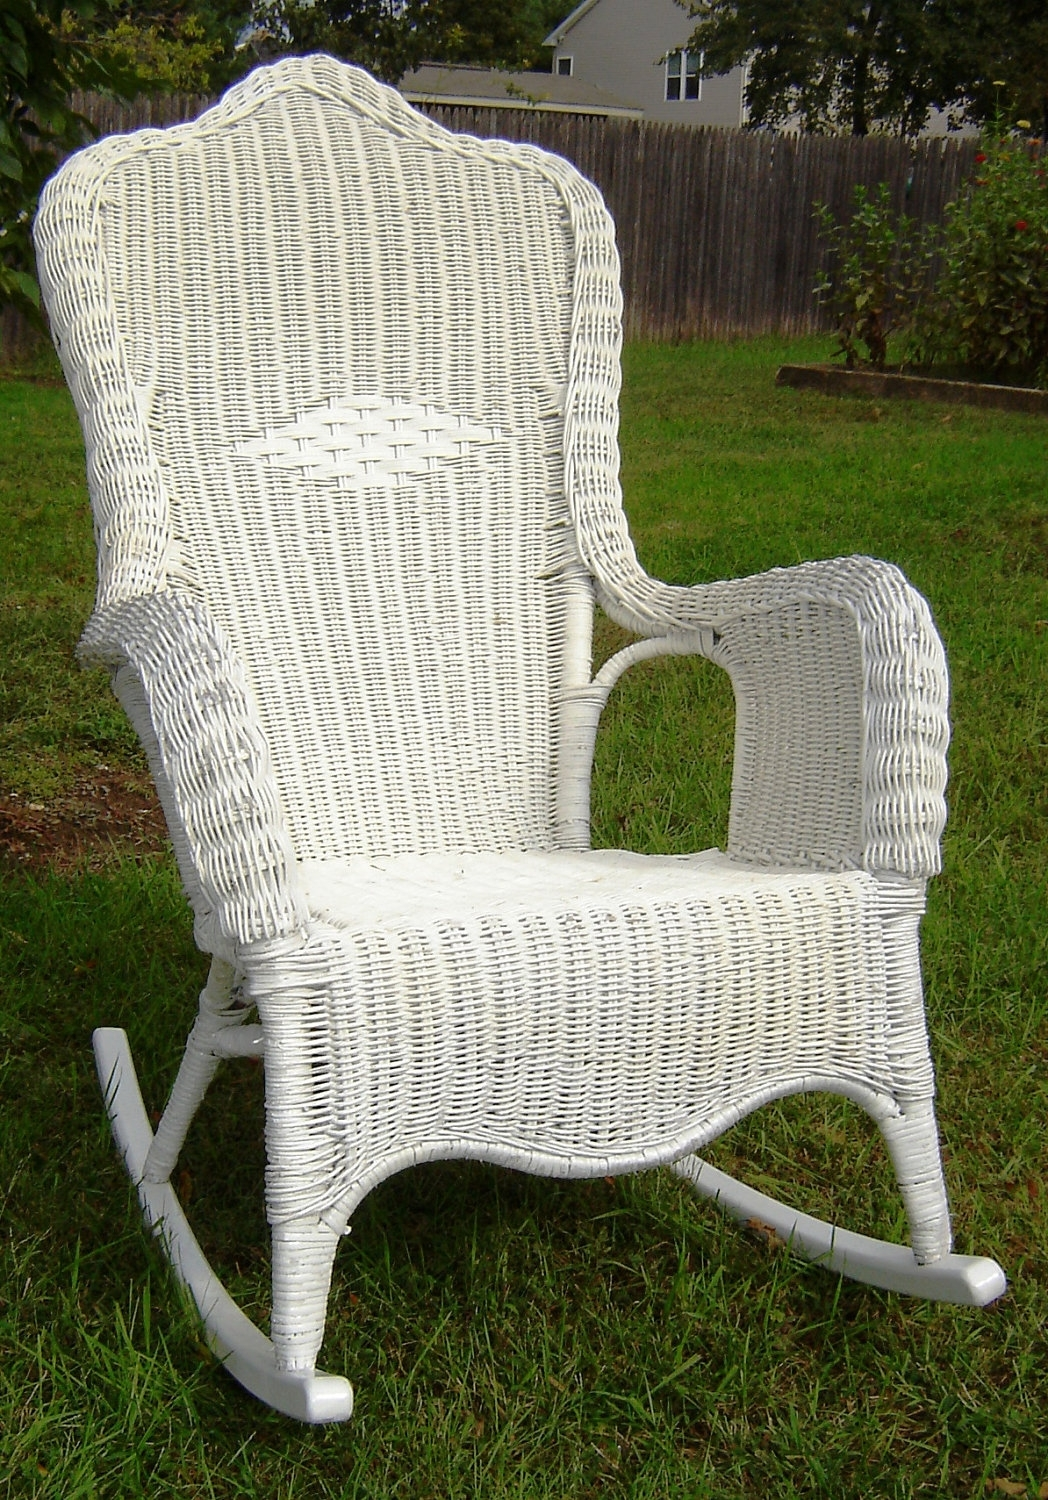 White Patio Rocking Chairs Regarding Famous Vintage White Wicker Rocking Chair — Wilson Home Ideas : Choosing A (View 5 of 15)